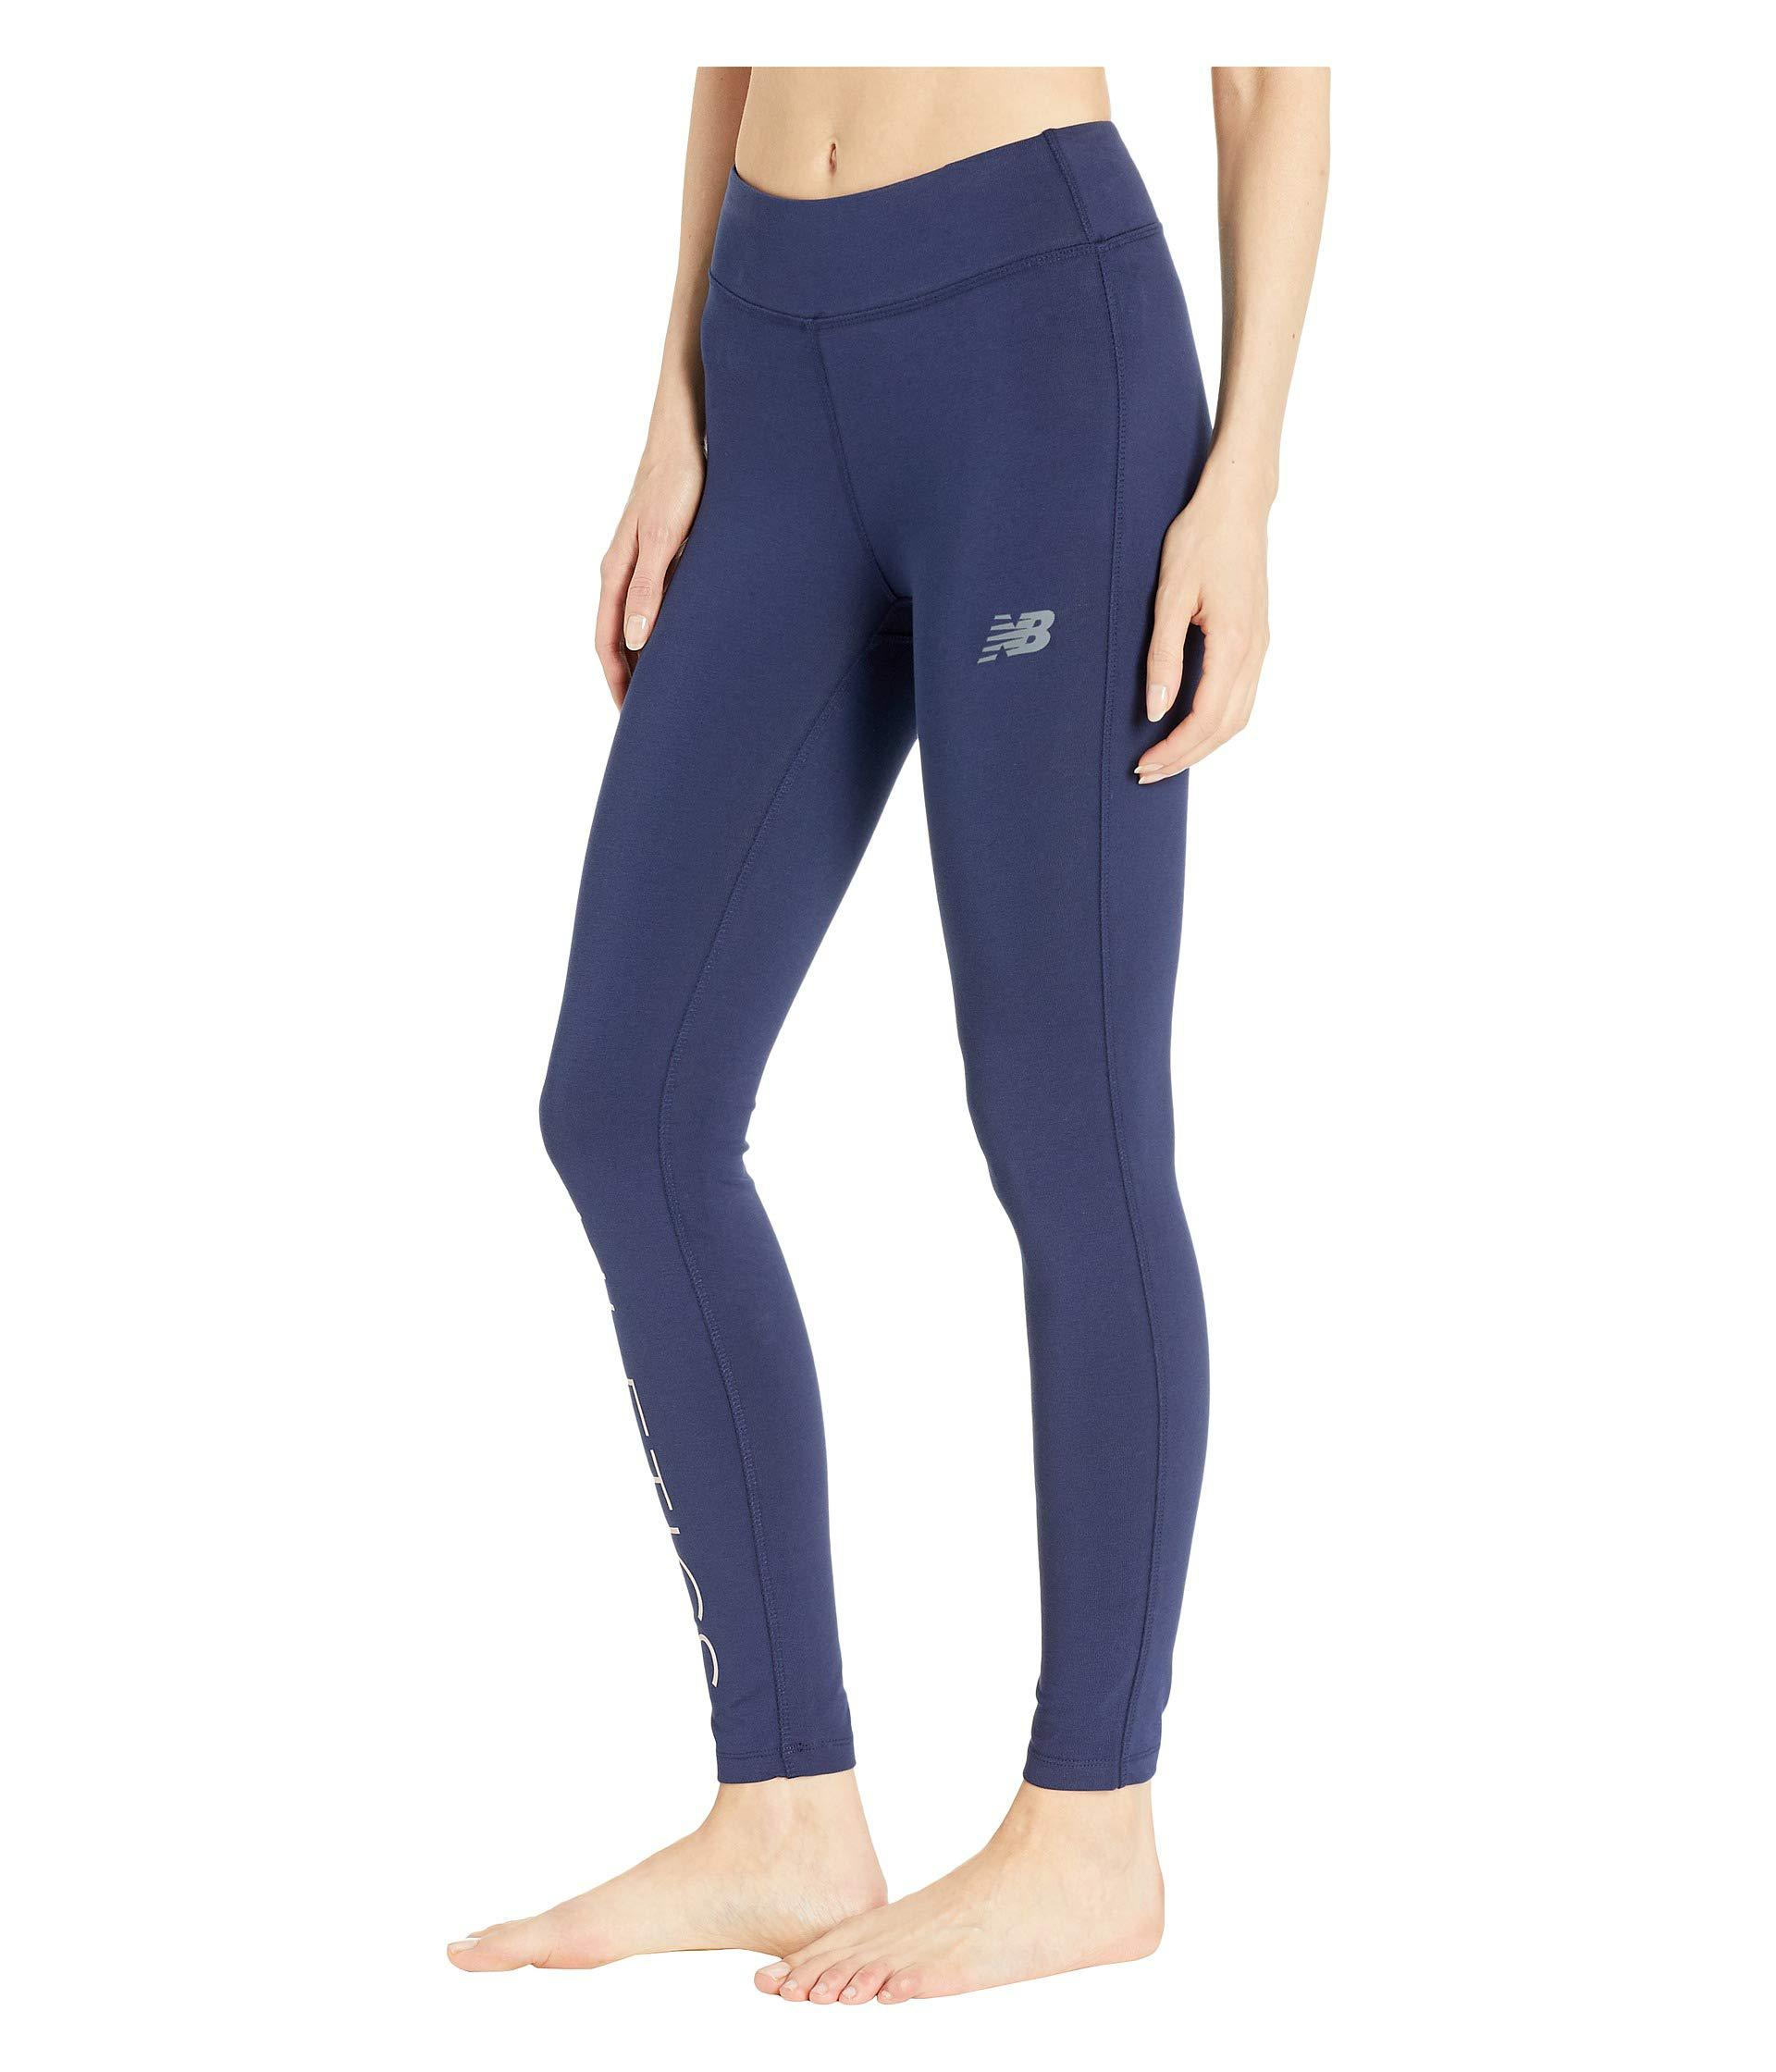 af3adc30d772c Lyst - New Balance Athletics Leggings in Blue